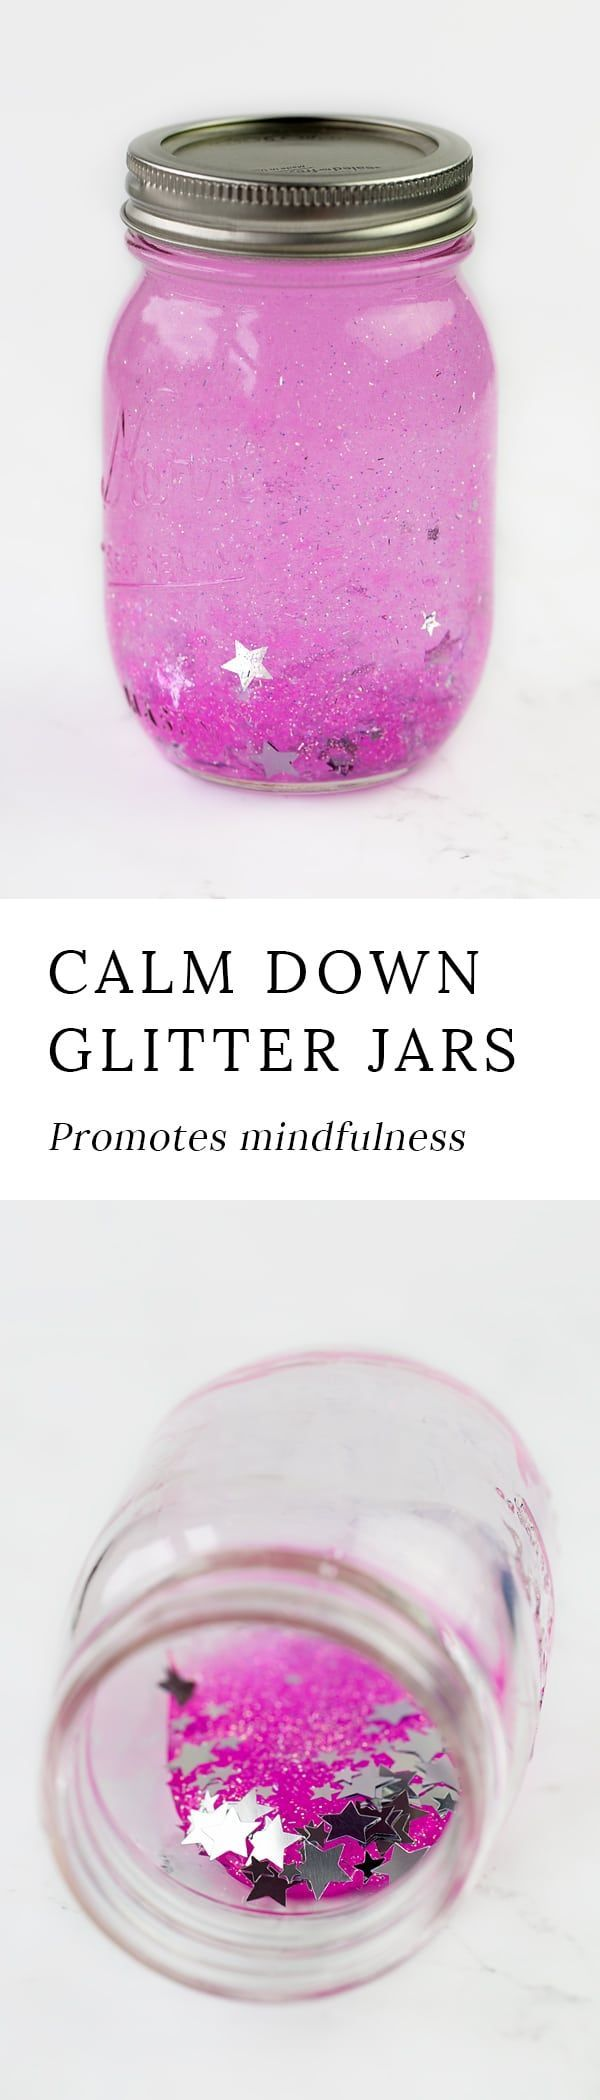 Mindfulness is an important skill for kids to develop. Learn how to make a glitter timer to promote mindfulness and calm in your home or classroom. via @https://www.pinterest.com/fireflymudpie/